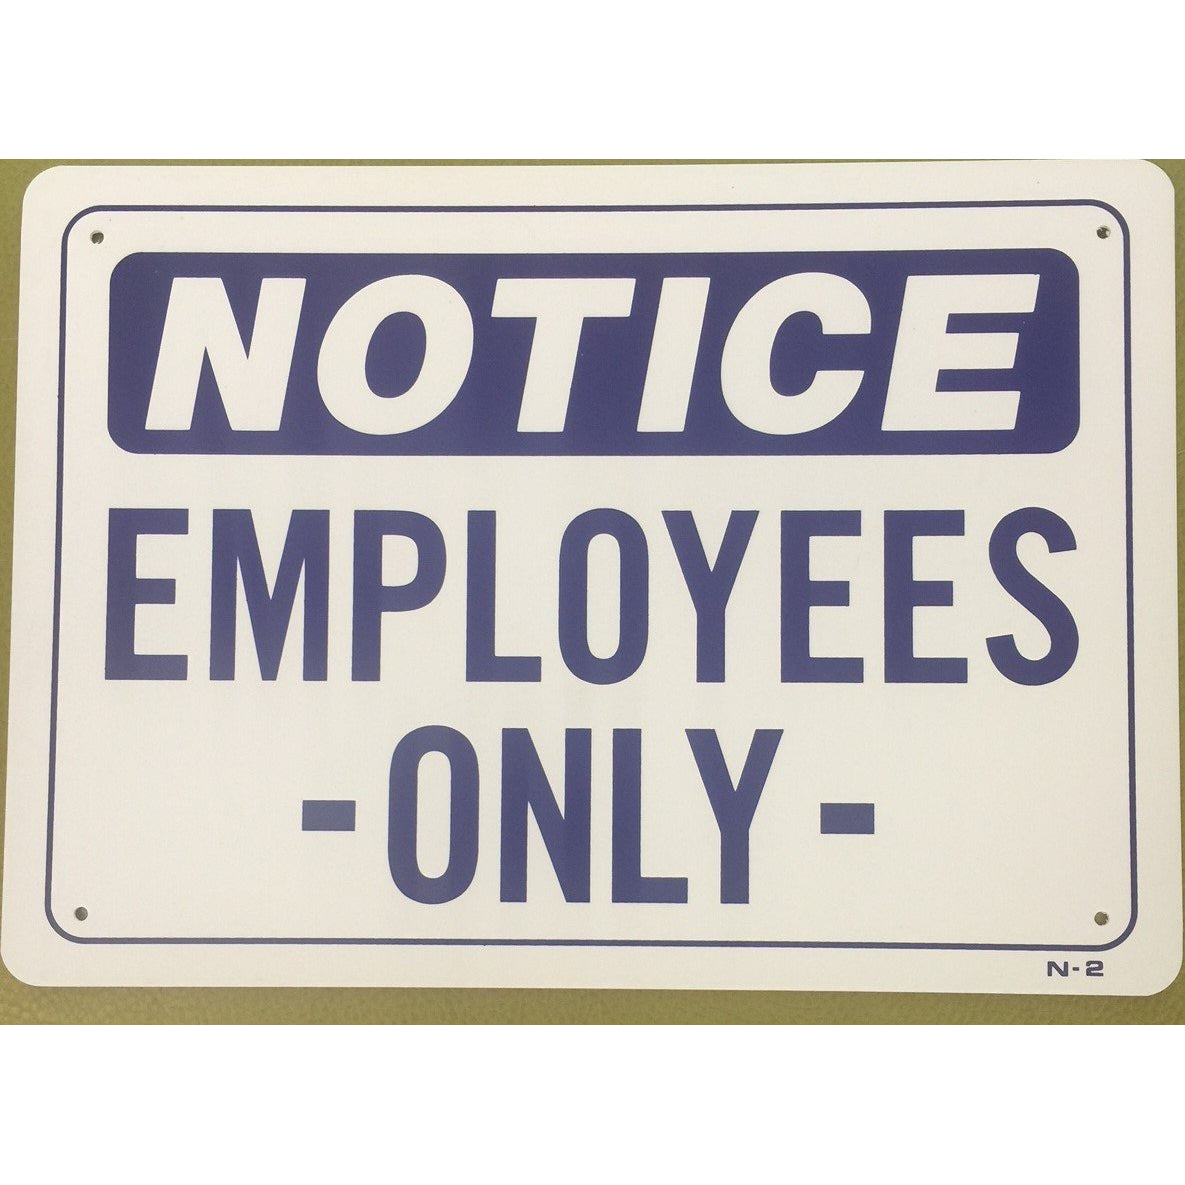 EMPLOYEES ONLY #N2